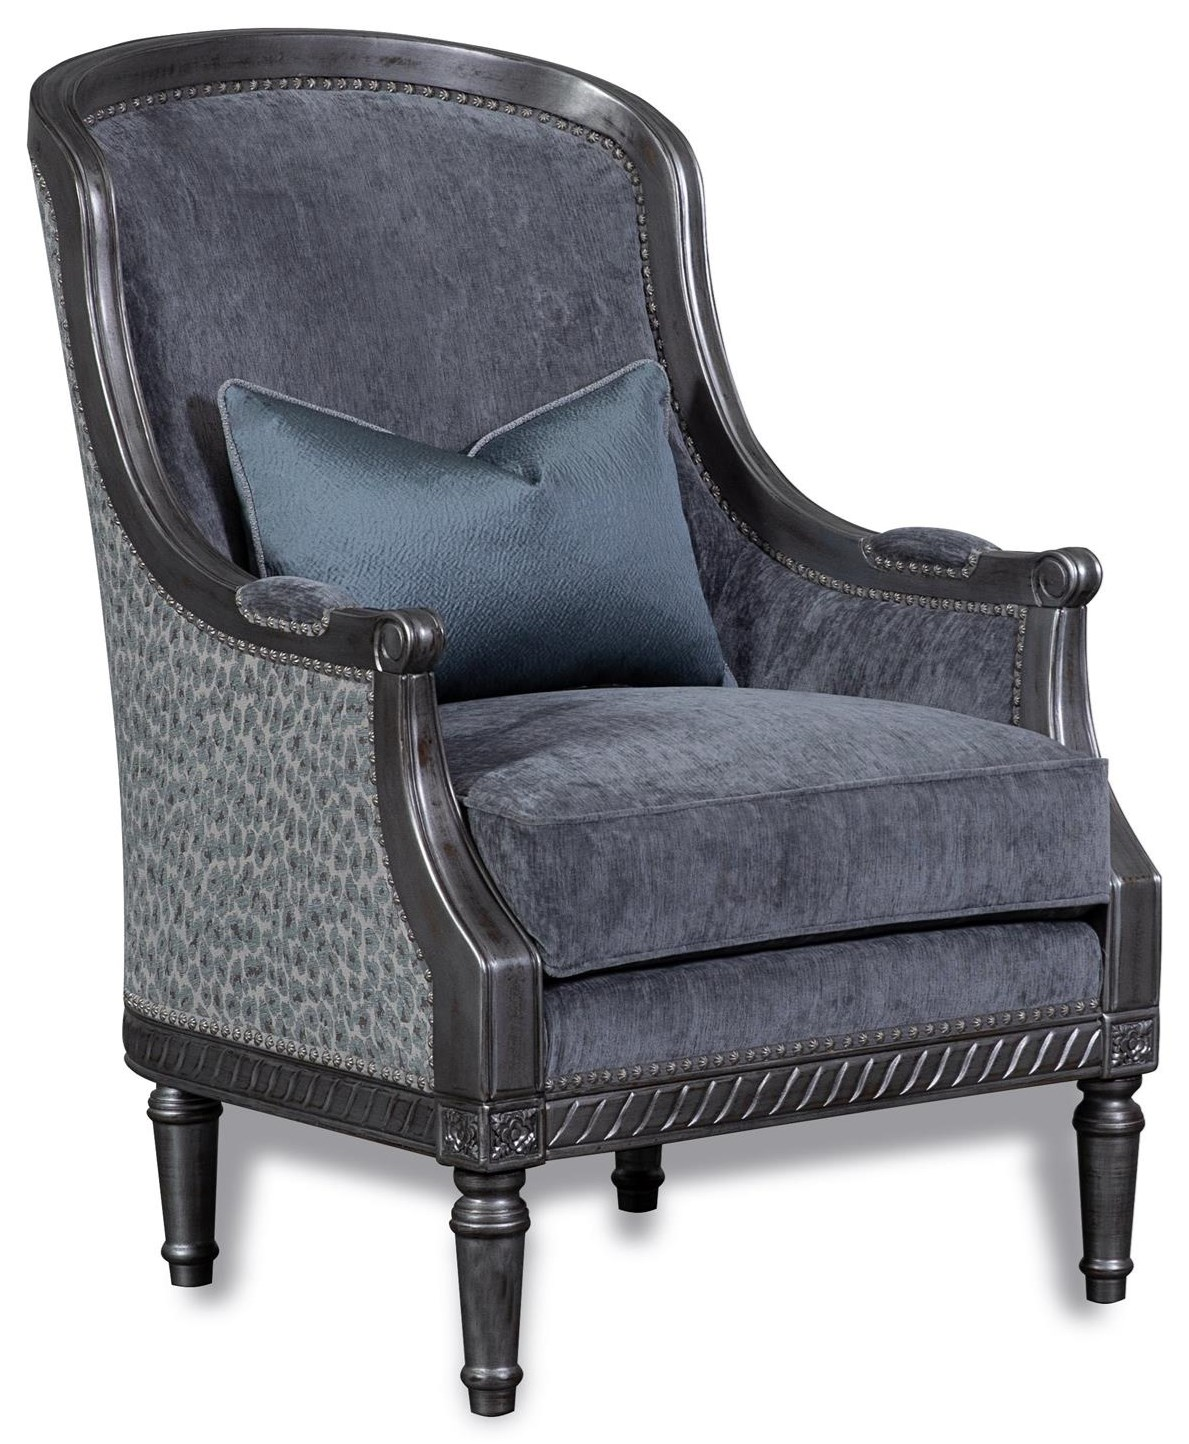 Barcelona Chair by Aria Designs at Stoney Creek Furniture